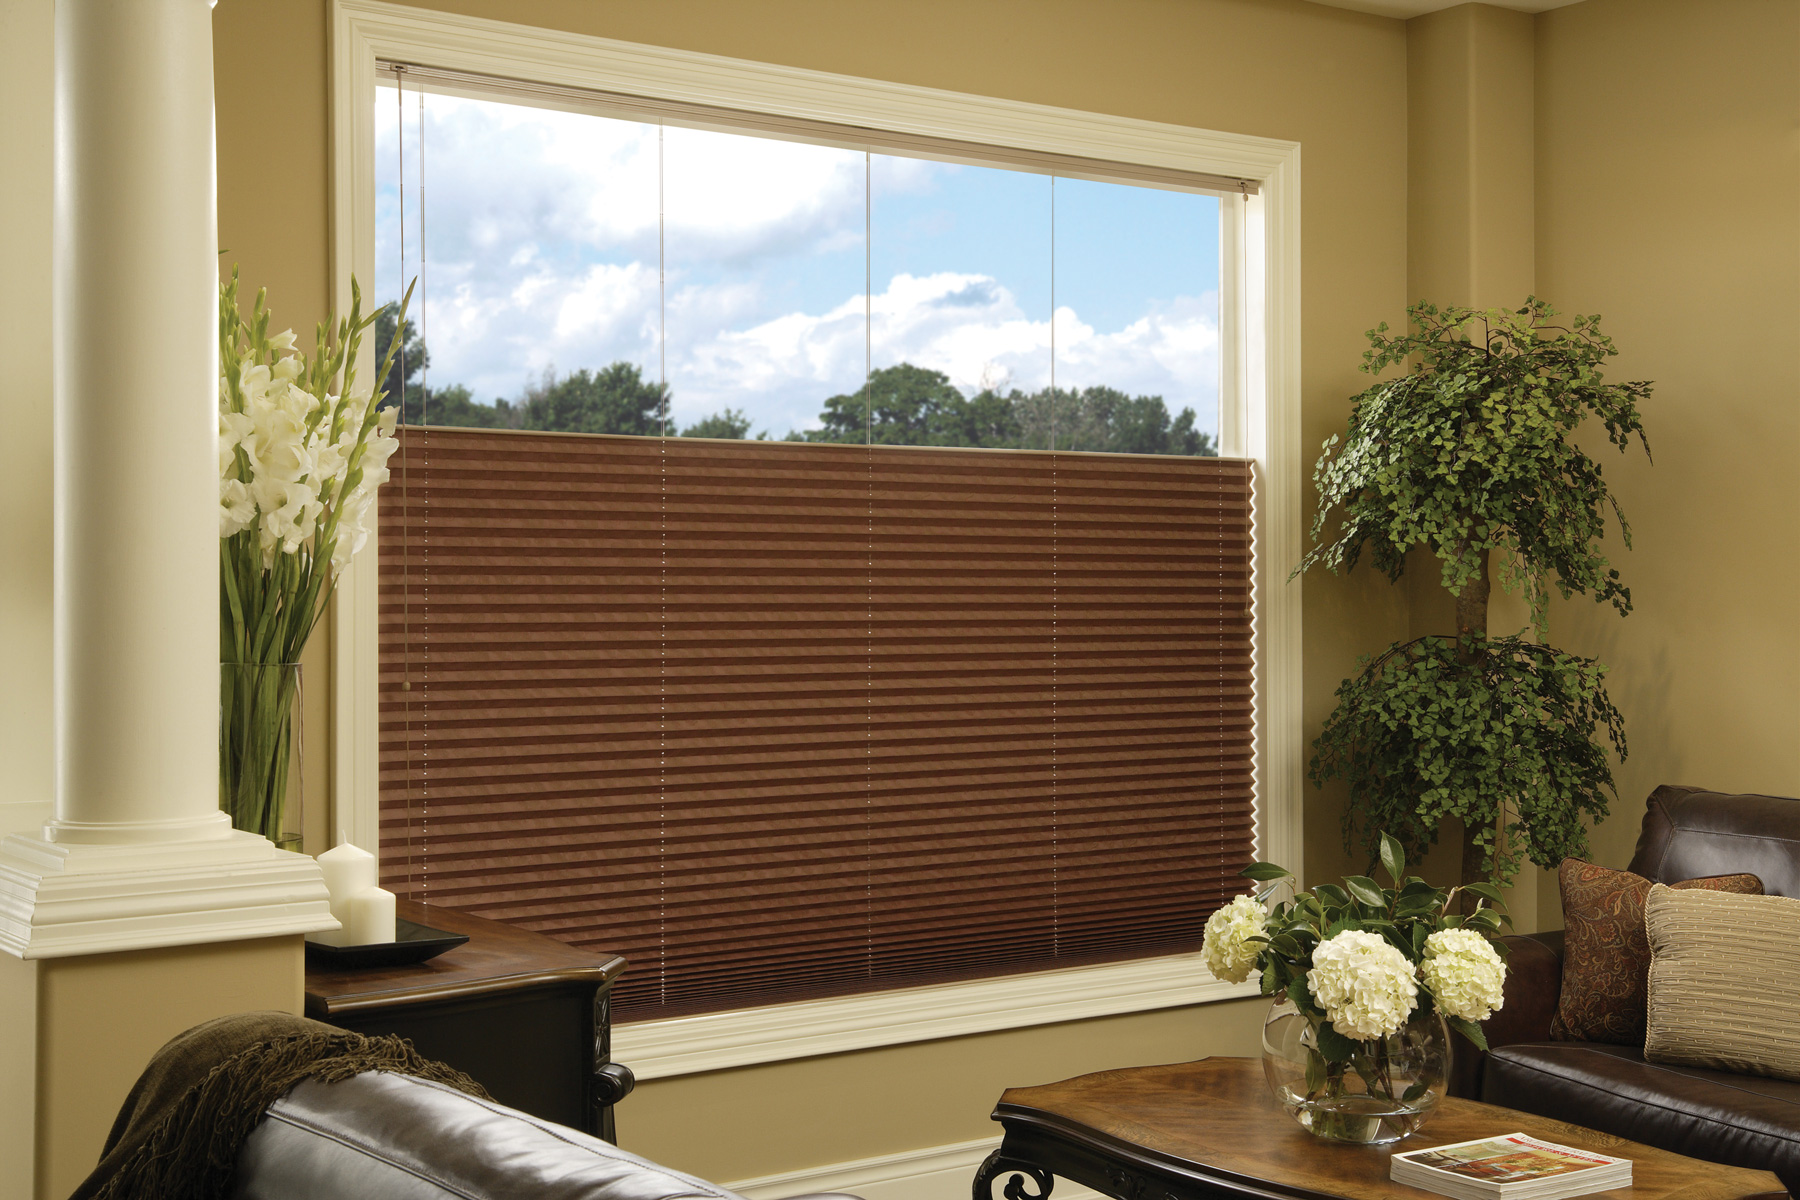 suppliers windows at for manual shades treatment window roller anielka blinds manufacturers and bamboo